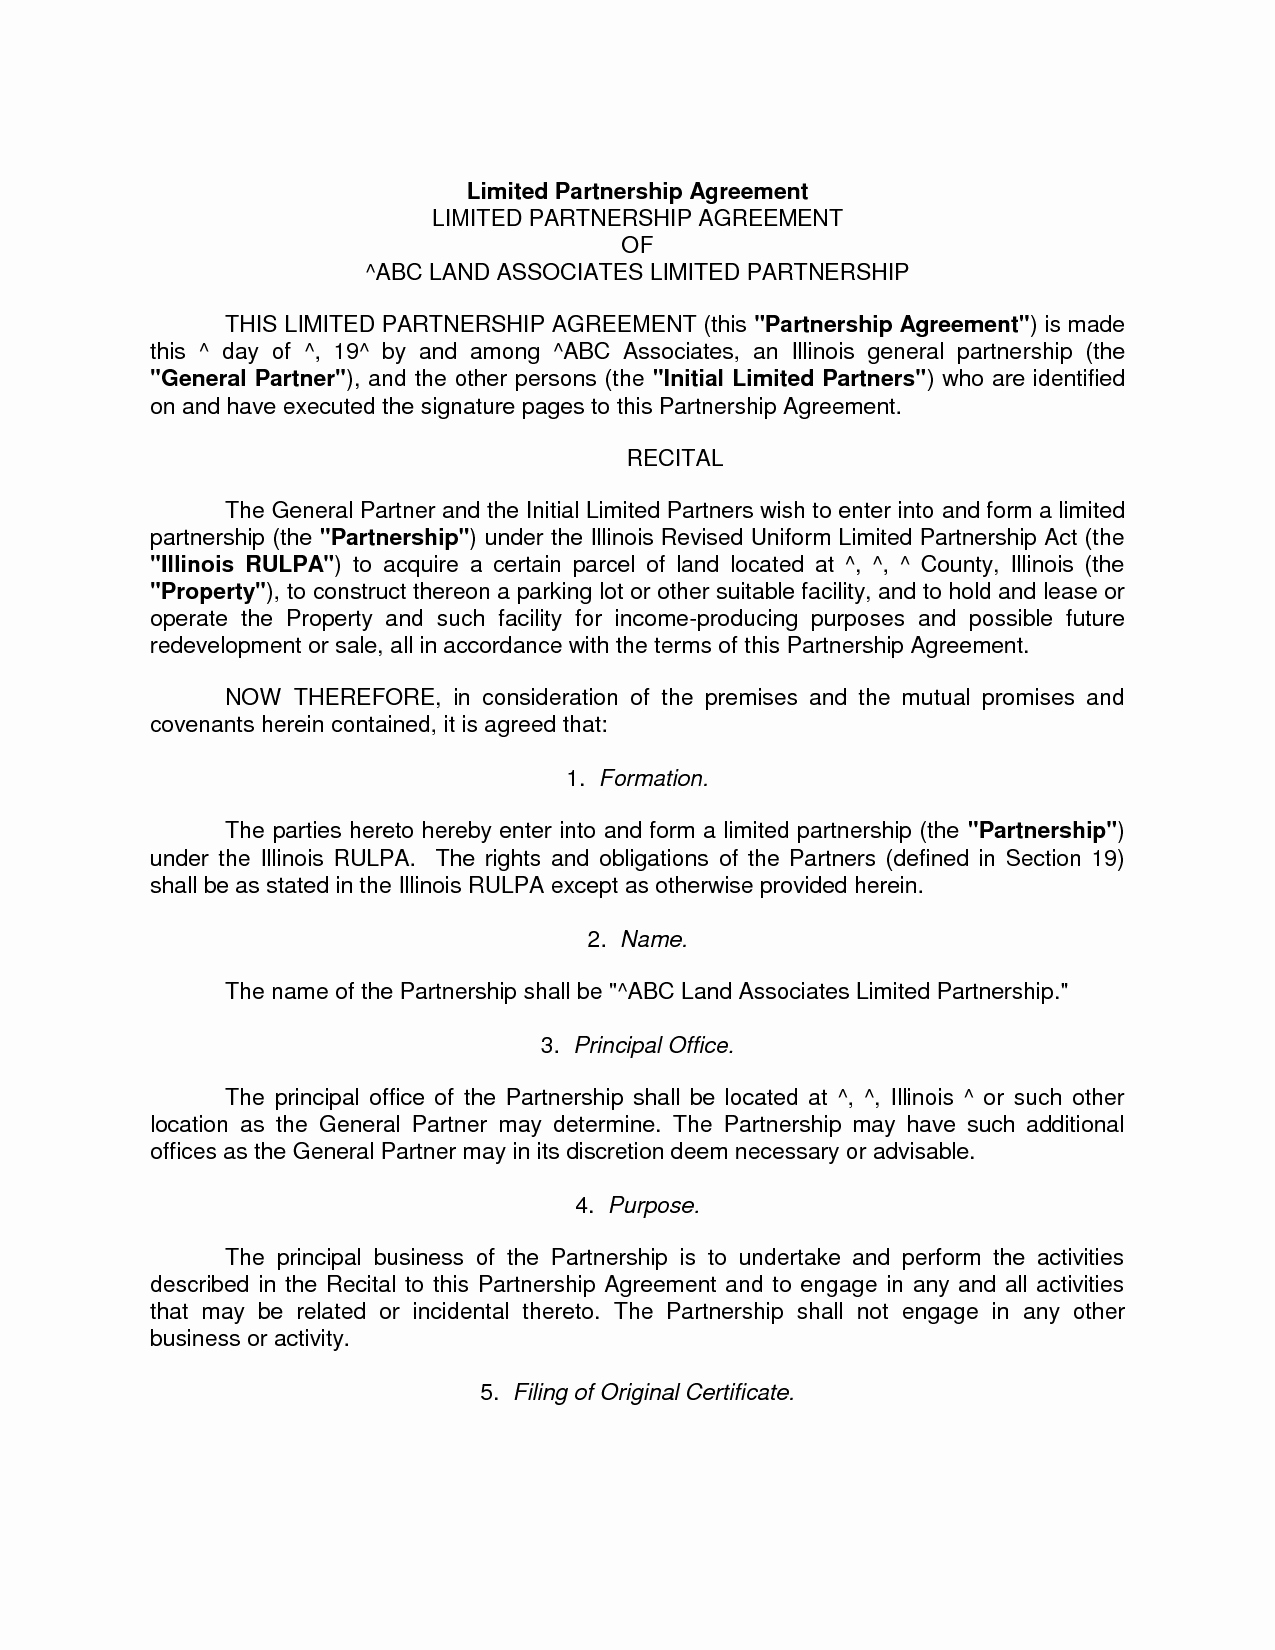 Partnership Agreement Template California Unique Dissolution Agreement Template Doc by Zdn